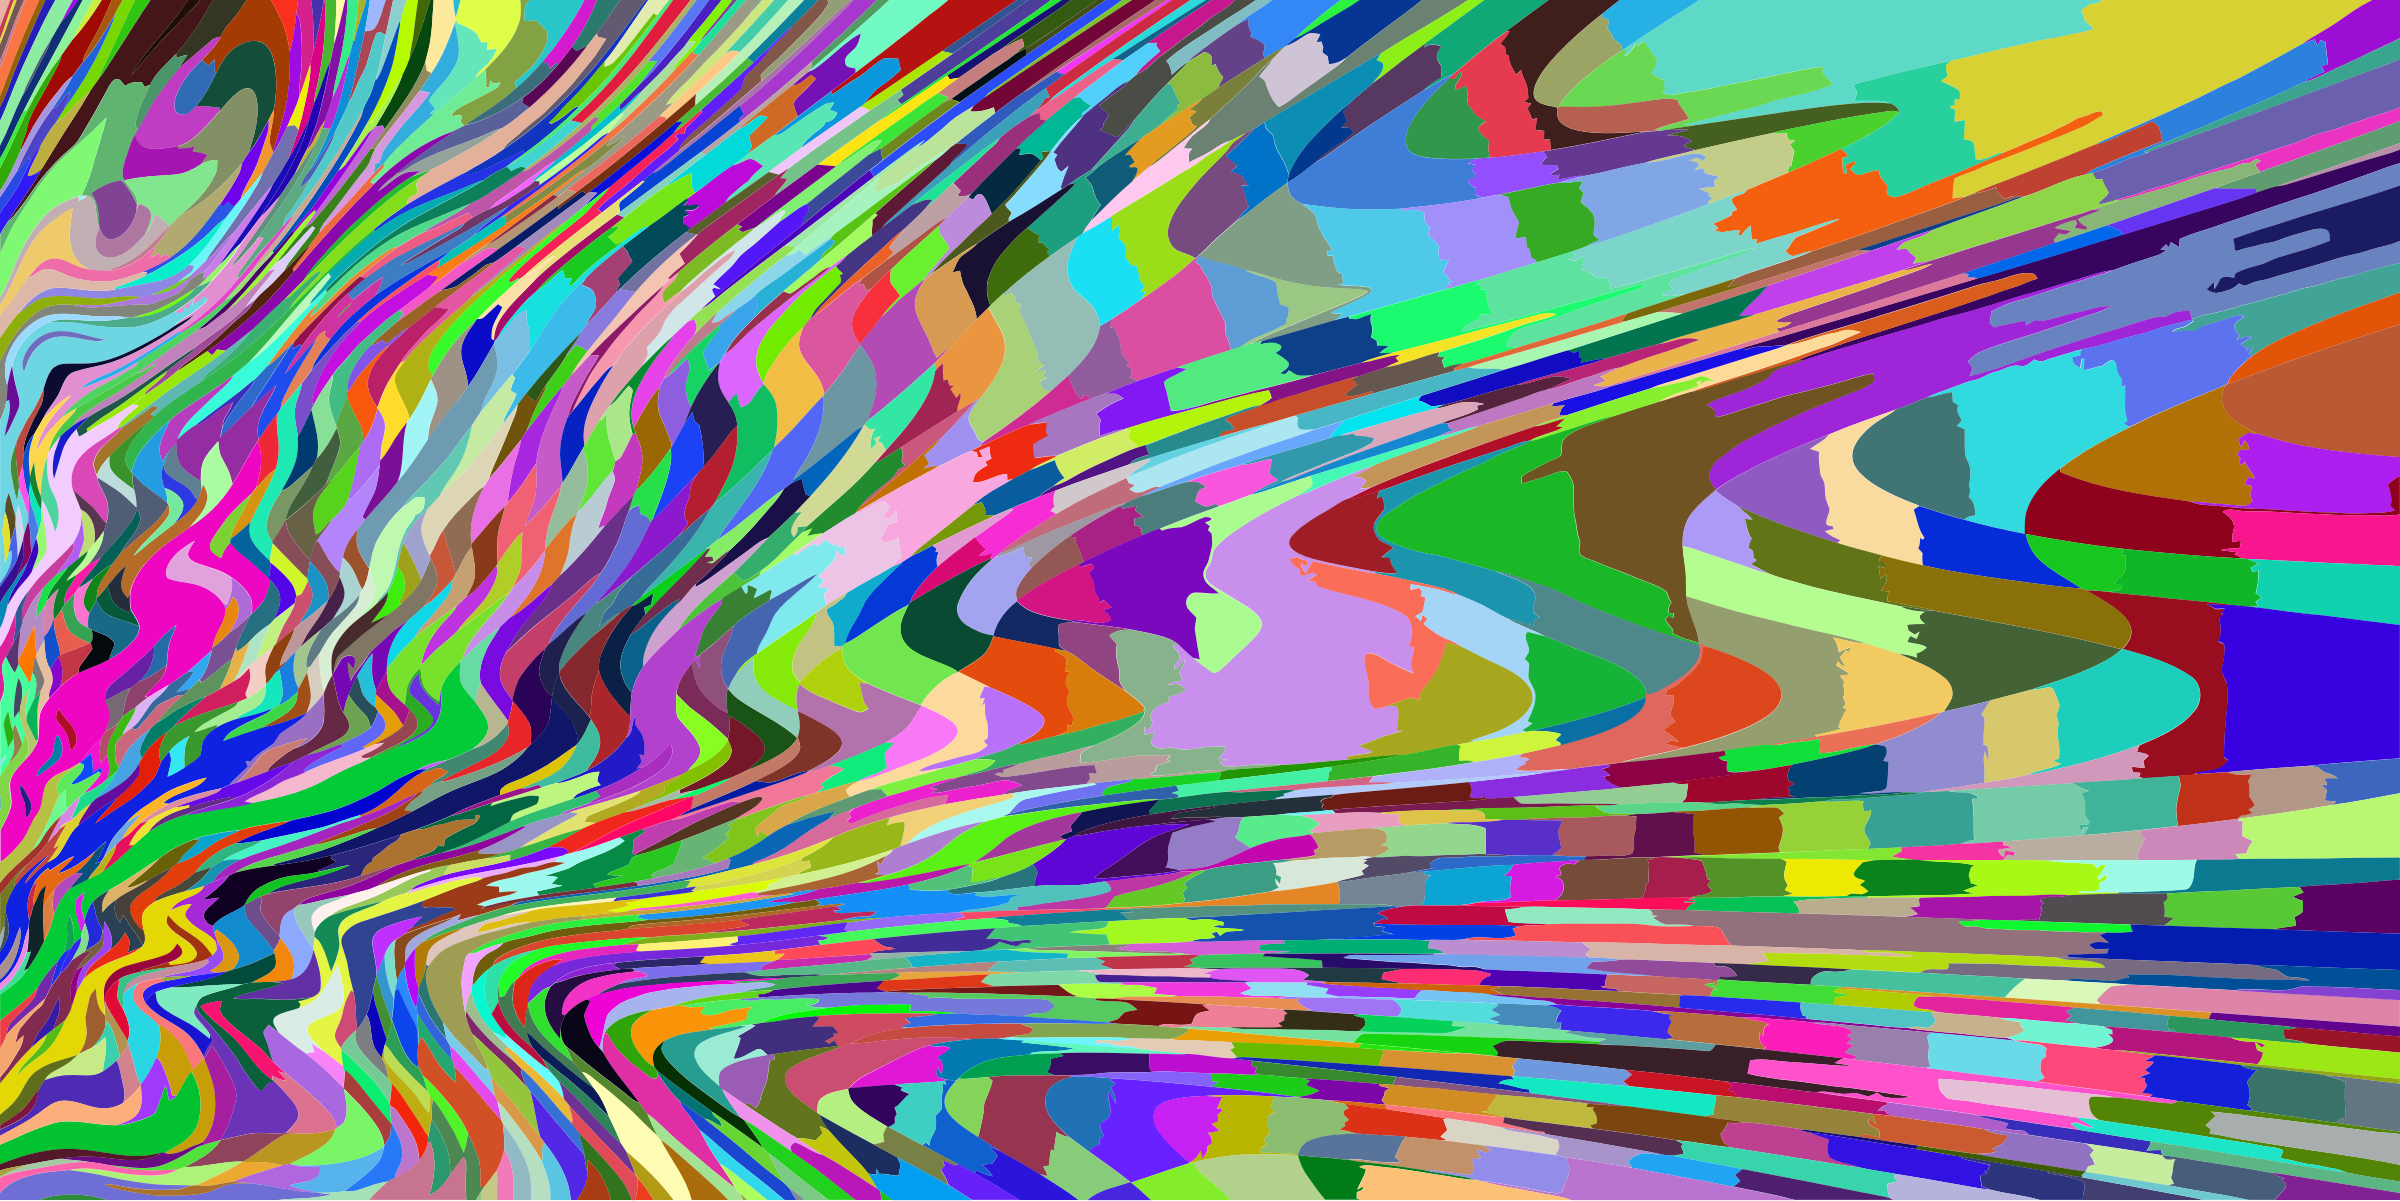 Prismatic Abstract  Background by GDJ